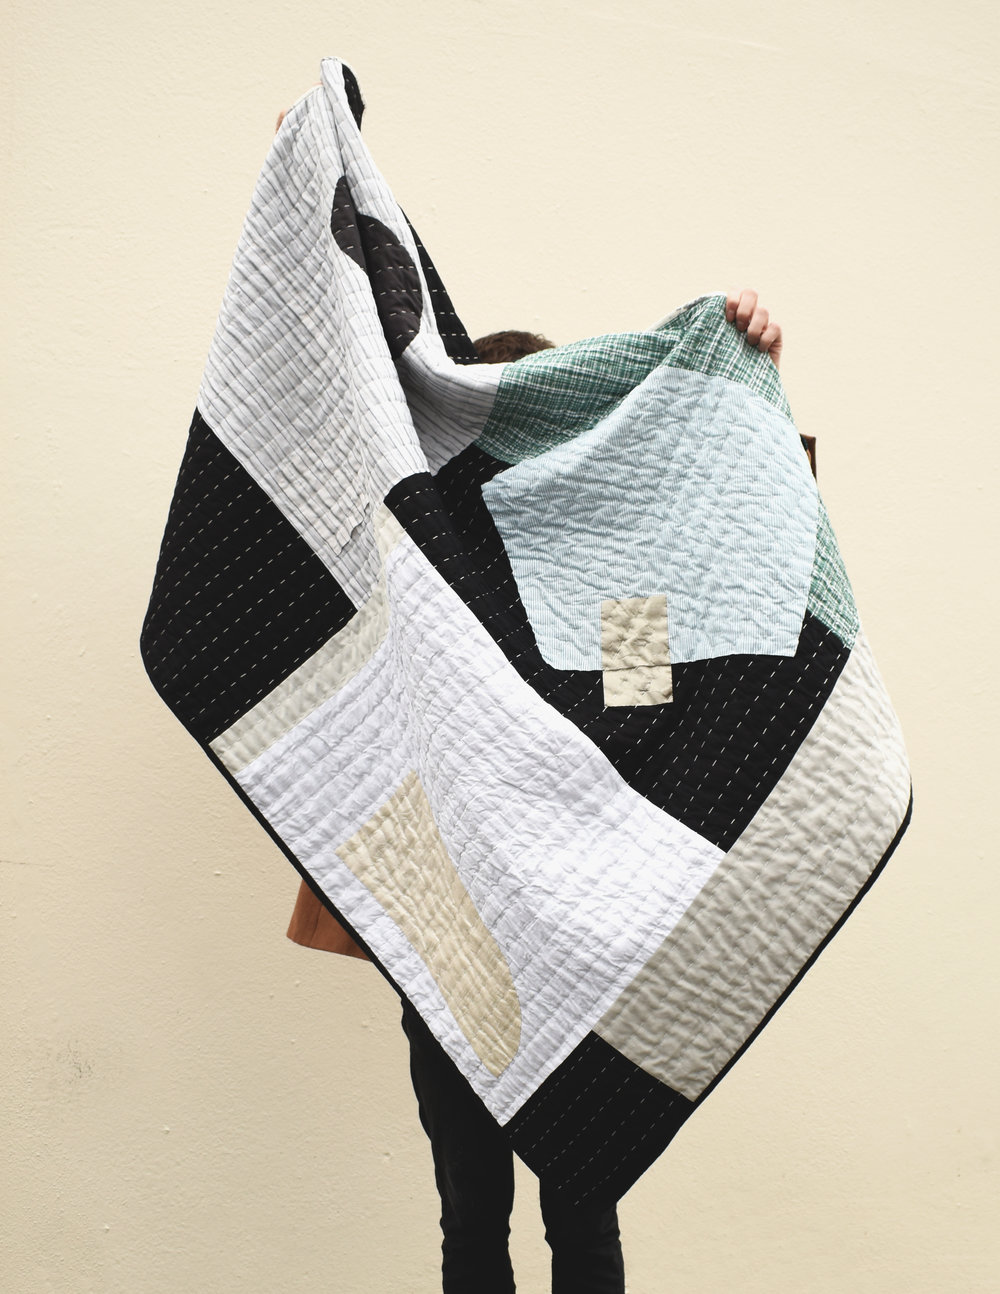 quilts - Handmade Quilts from House of Quinn